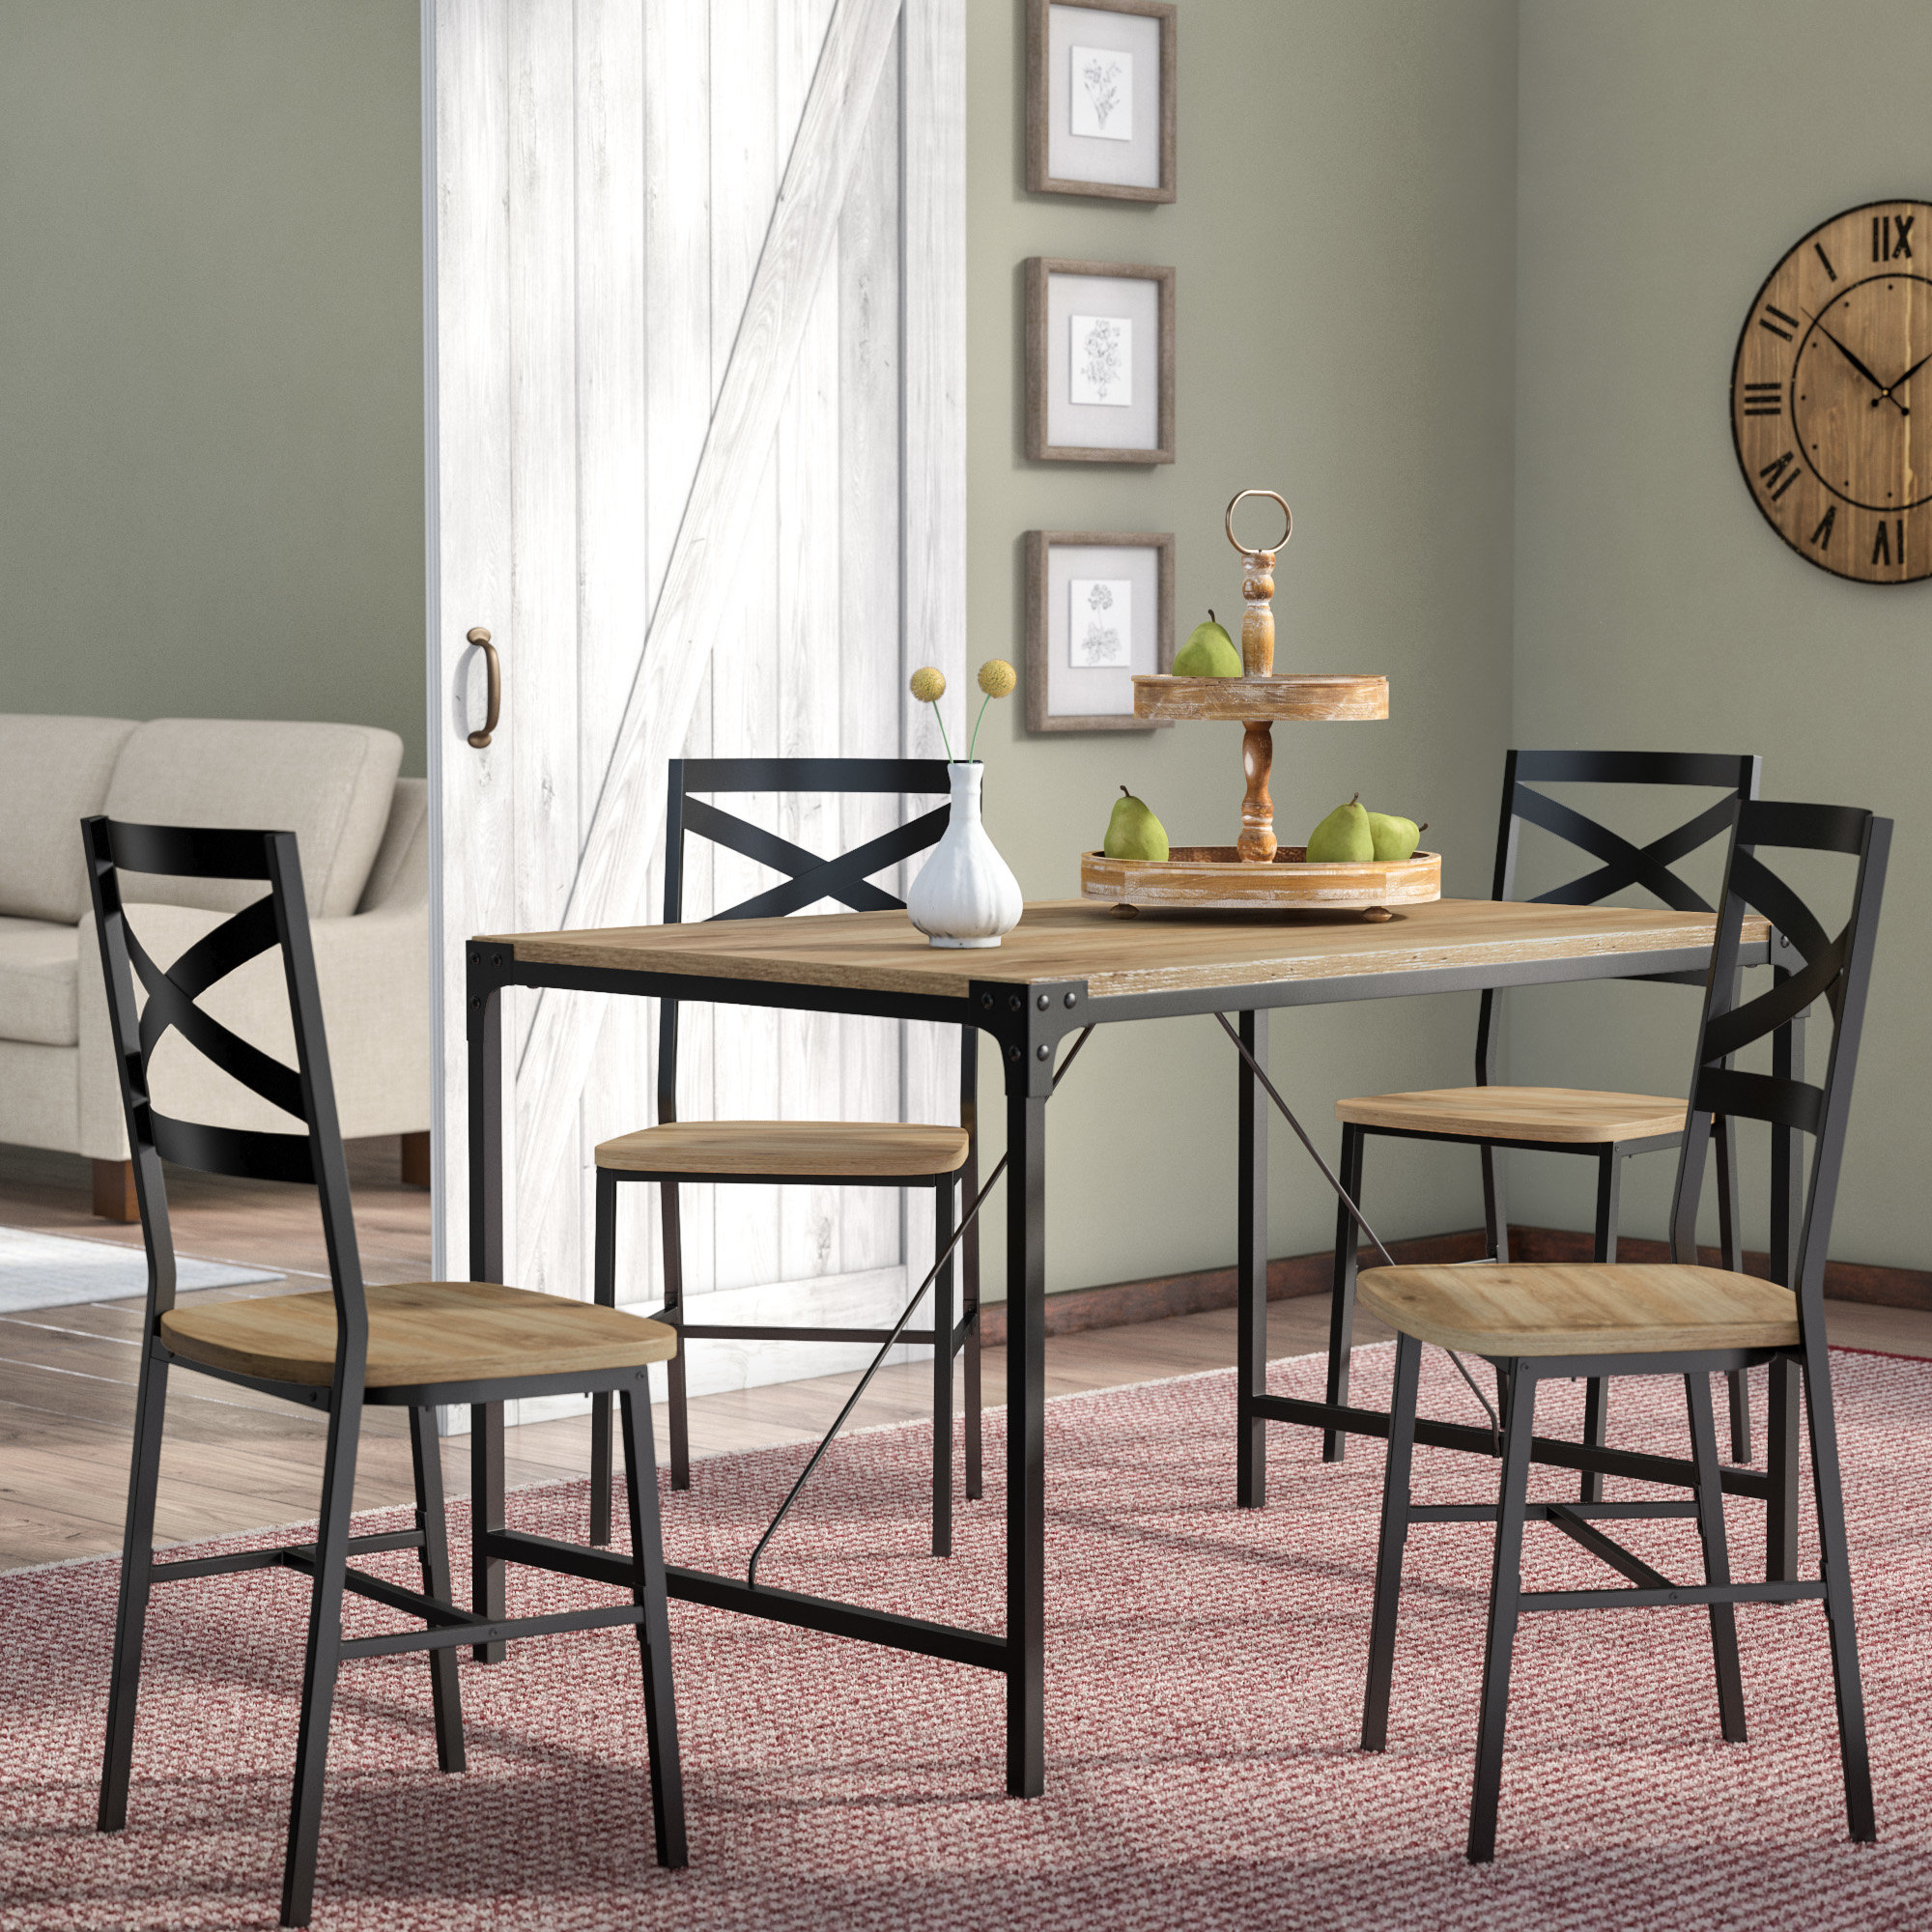 2018 Calla 5 Piece Dining Sets Inside Samantha 5 Piece Dining Set (View 2 of 20)